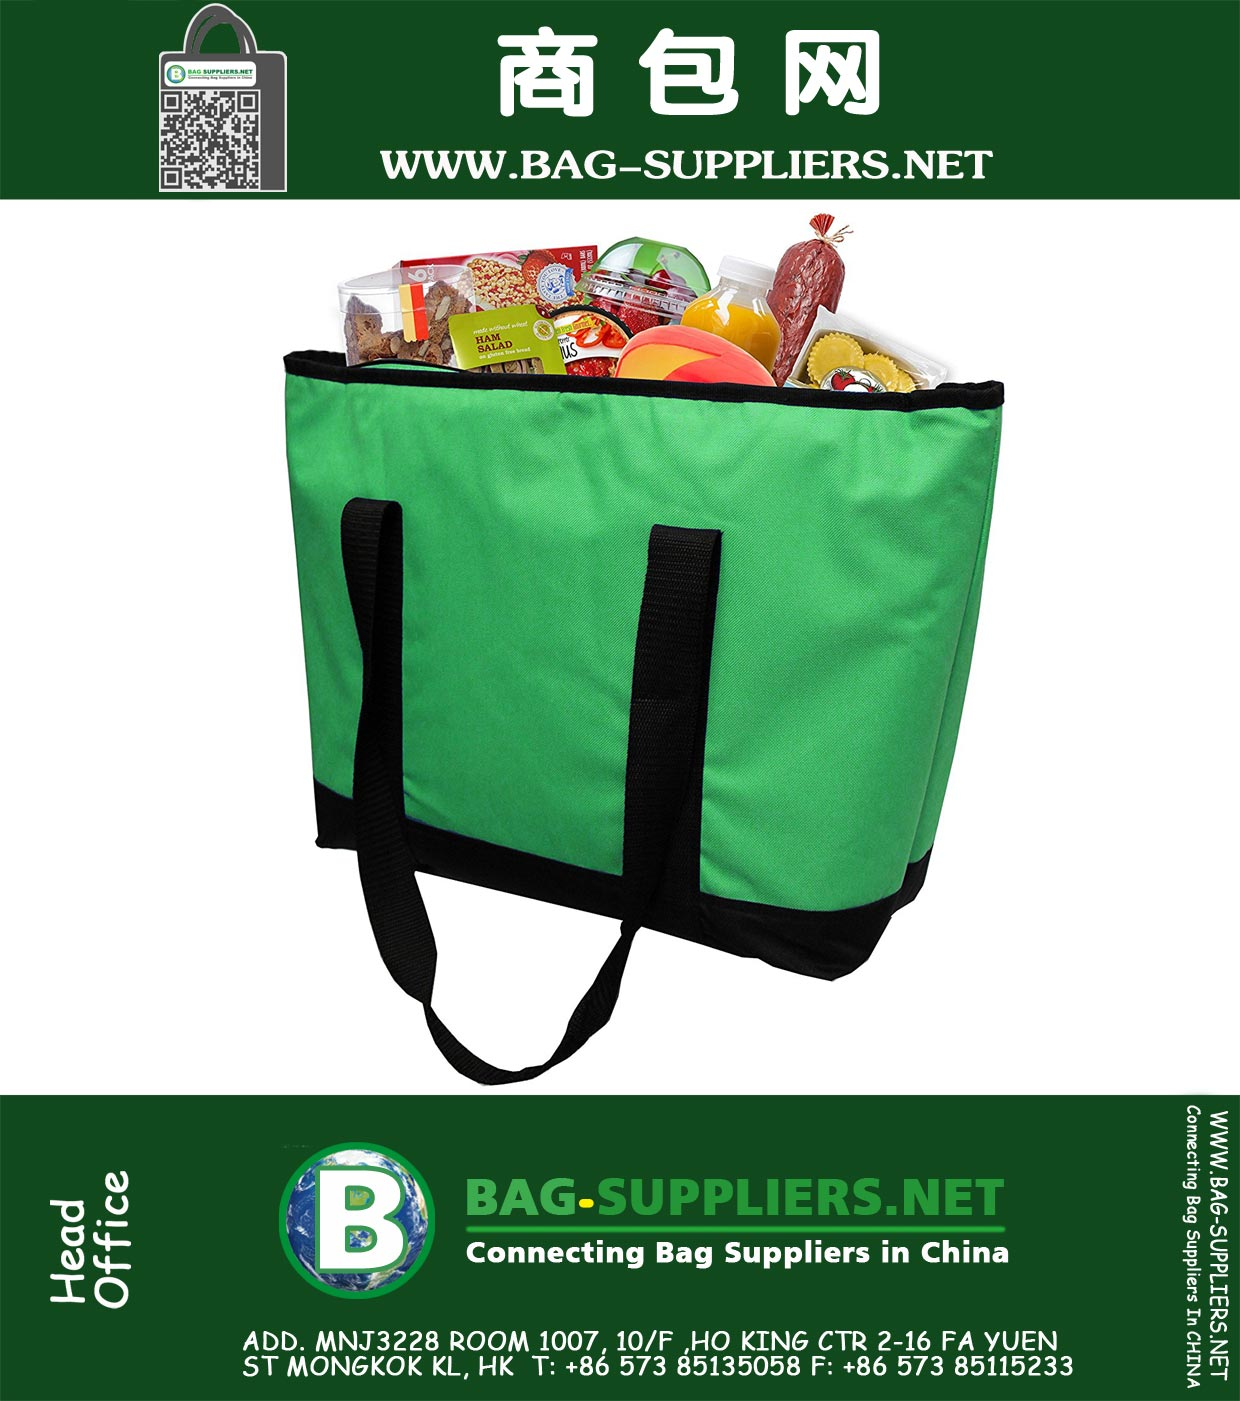 Insulated Grocery Bag Shopping Tote with WATERPROOF LINING and ZIPPER Closure - Extra Large Heavy Duty Nylon, ZY-TLCA0078